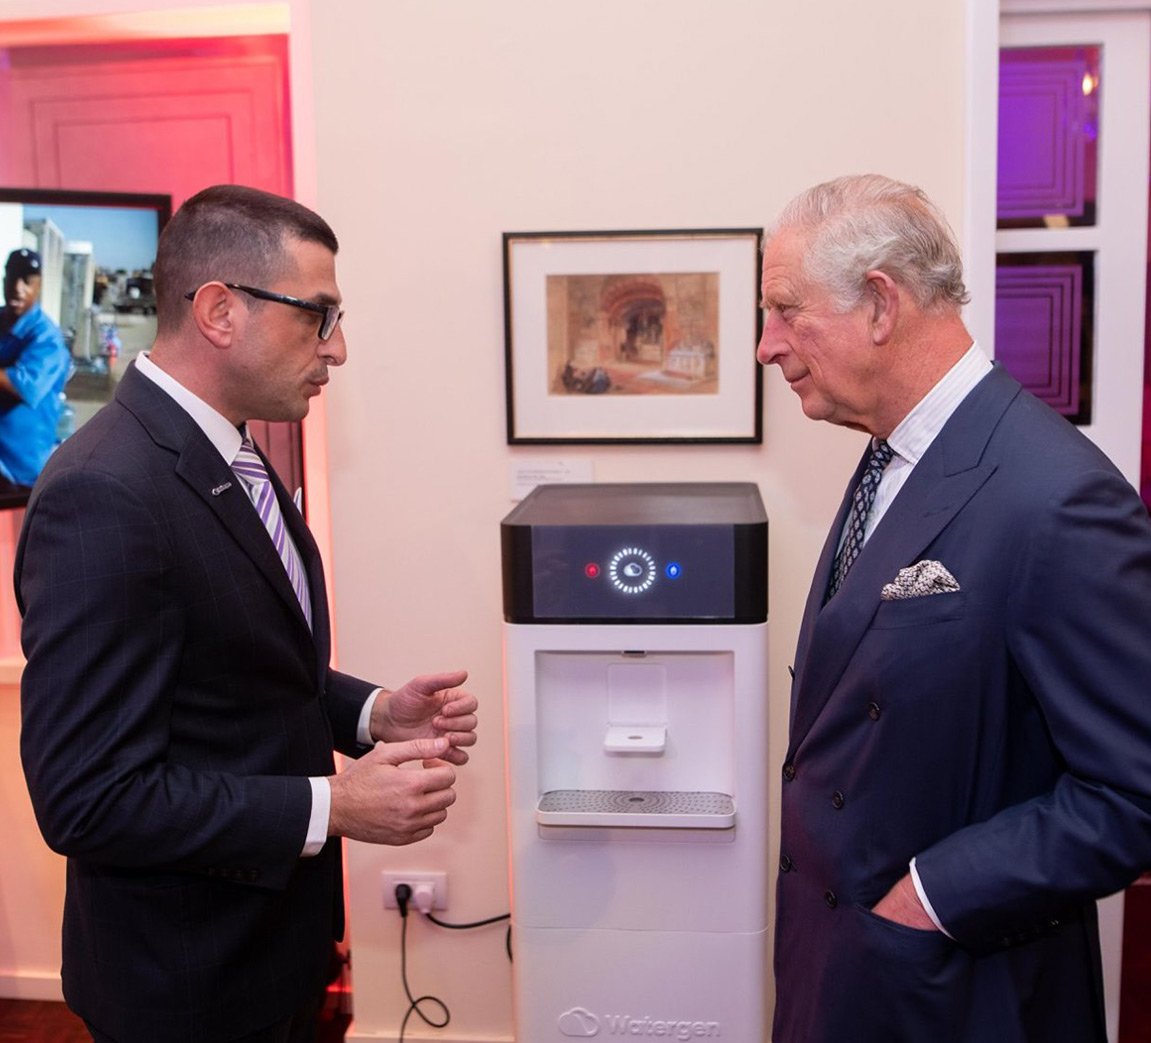 HRH Prince Charles introduced to Watergen technology during visit to Israel